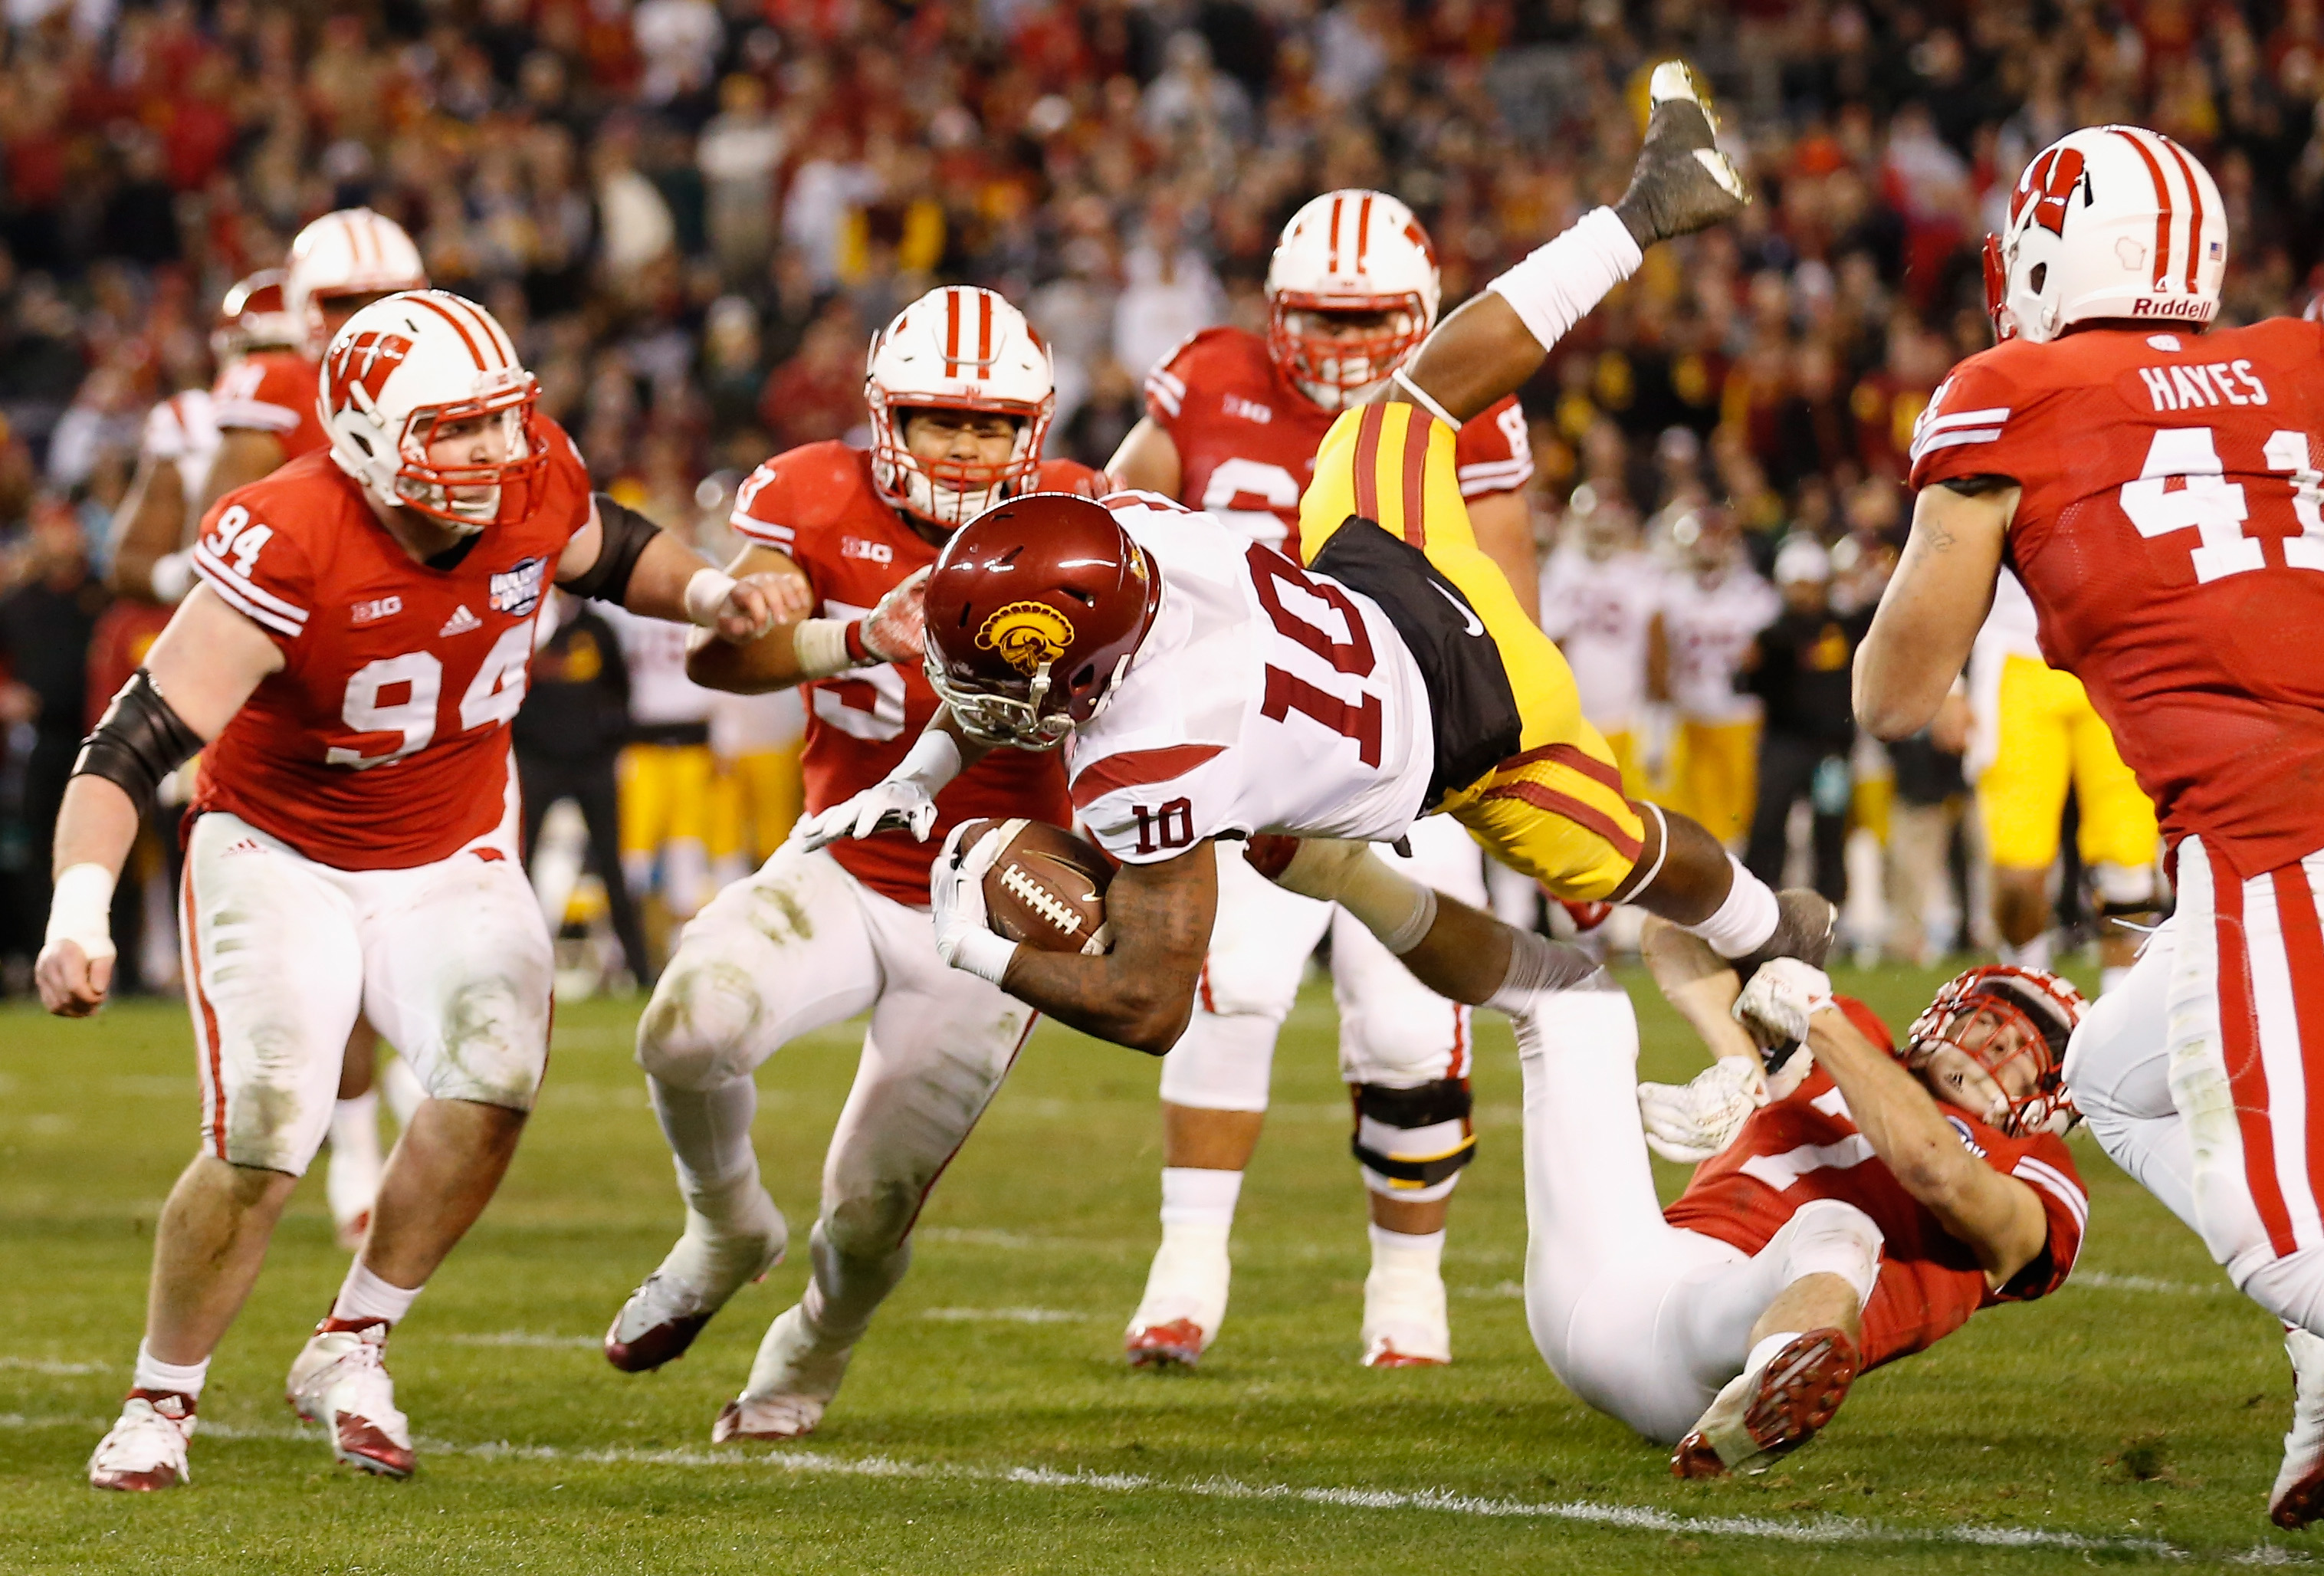 SAN DIEGO, CA - DECEMBER 30:  Jalen Greene #10 of the USC Trojans is upended while being tackled by Michael Caputo #7 of the Wisconsin Badgers and Conor Sheehy #94 of the Wisconsin Badgers during the second half of the National University Holiday Bowl at Qualcomm Stadium on December 30, 2015 in San Diego, California.  (Photo by Sean M. Haffey/Getty Images)